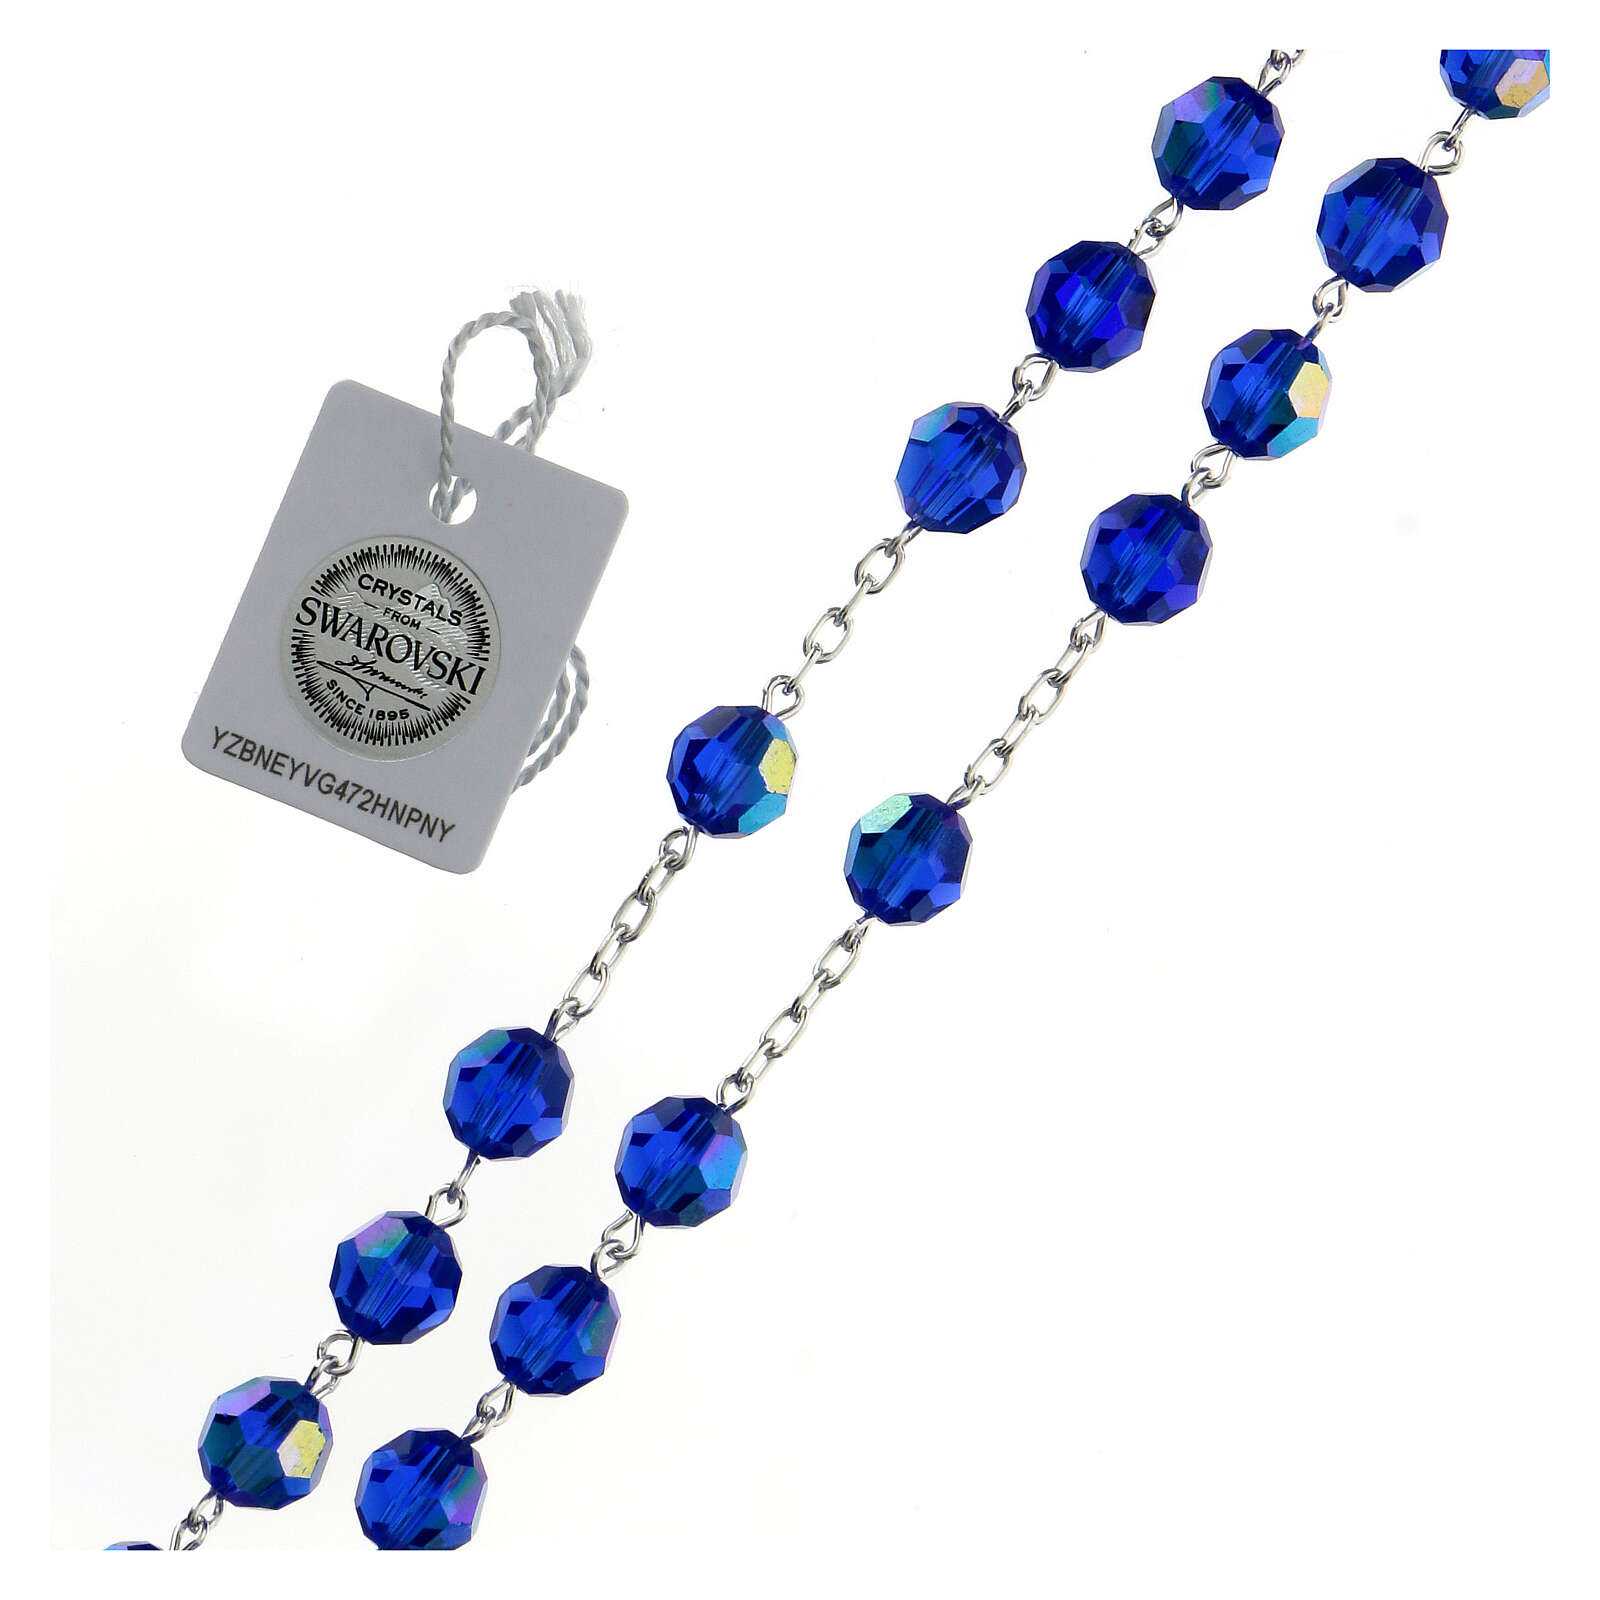 Rosary in 800 silver and blue Swarowski crystal grains measuring 8mm 4